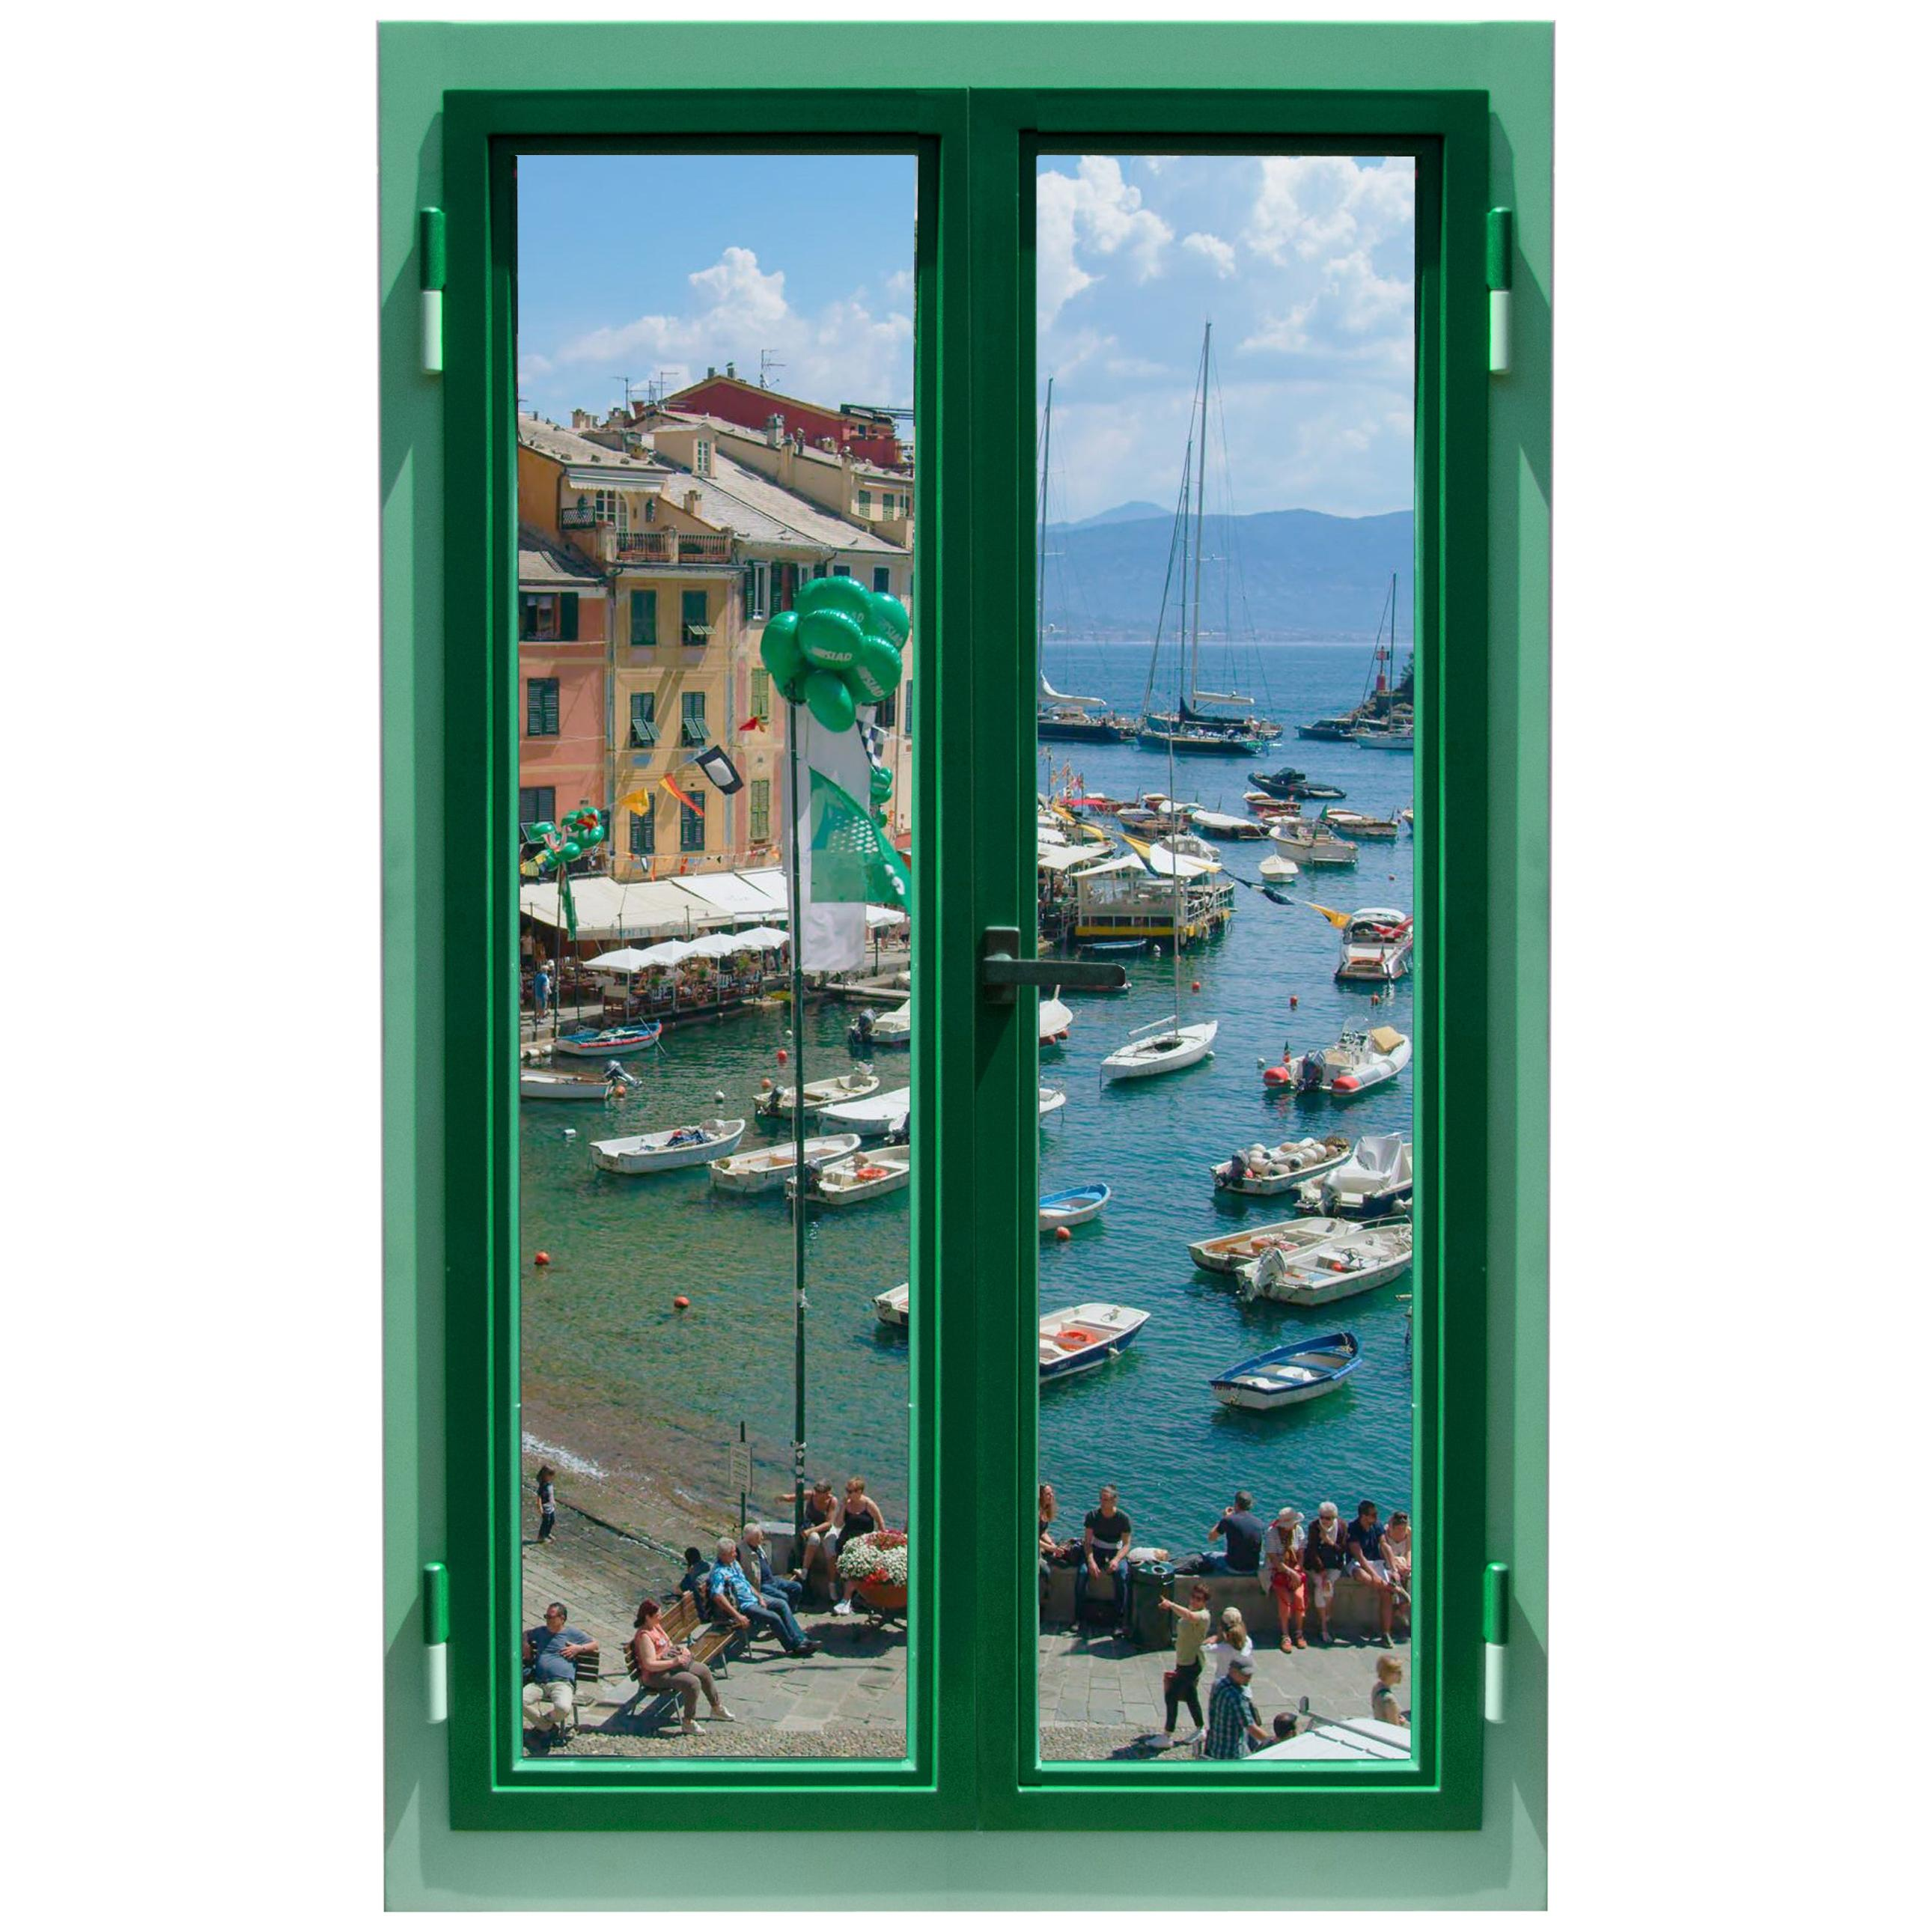 Anotherview No.13, Early Summer in Portofino by Anotherview